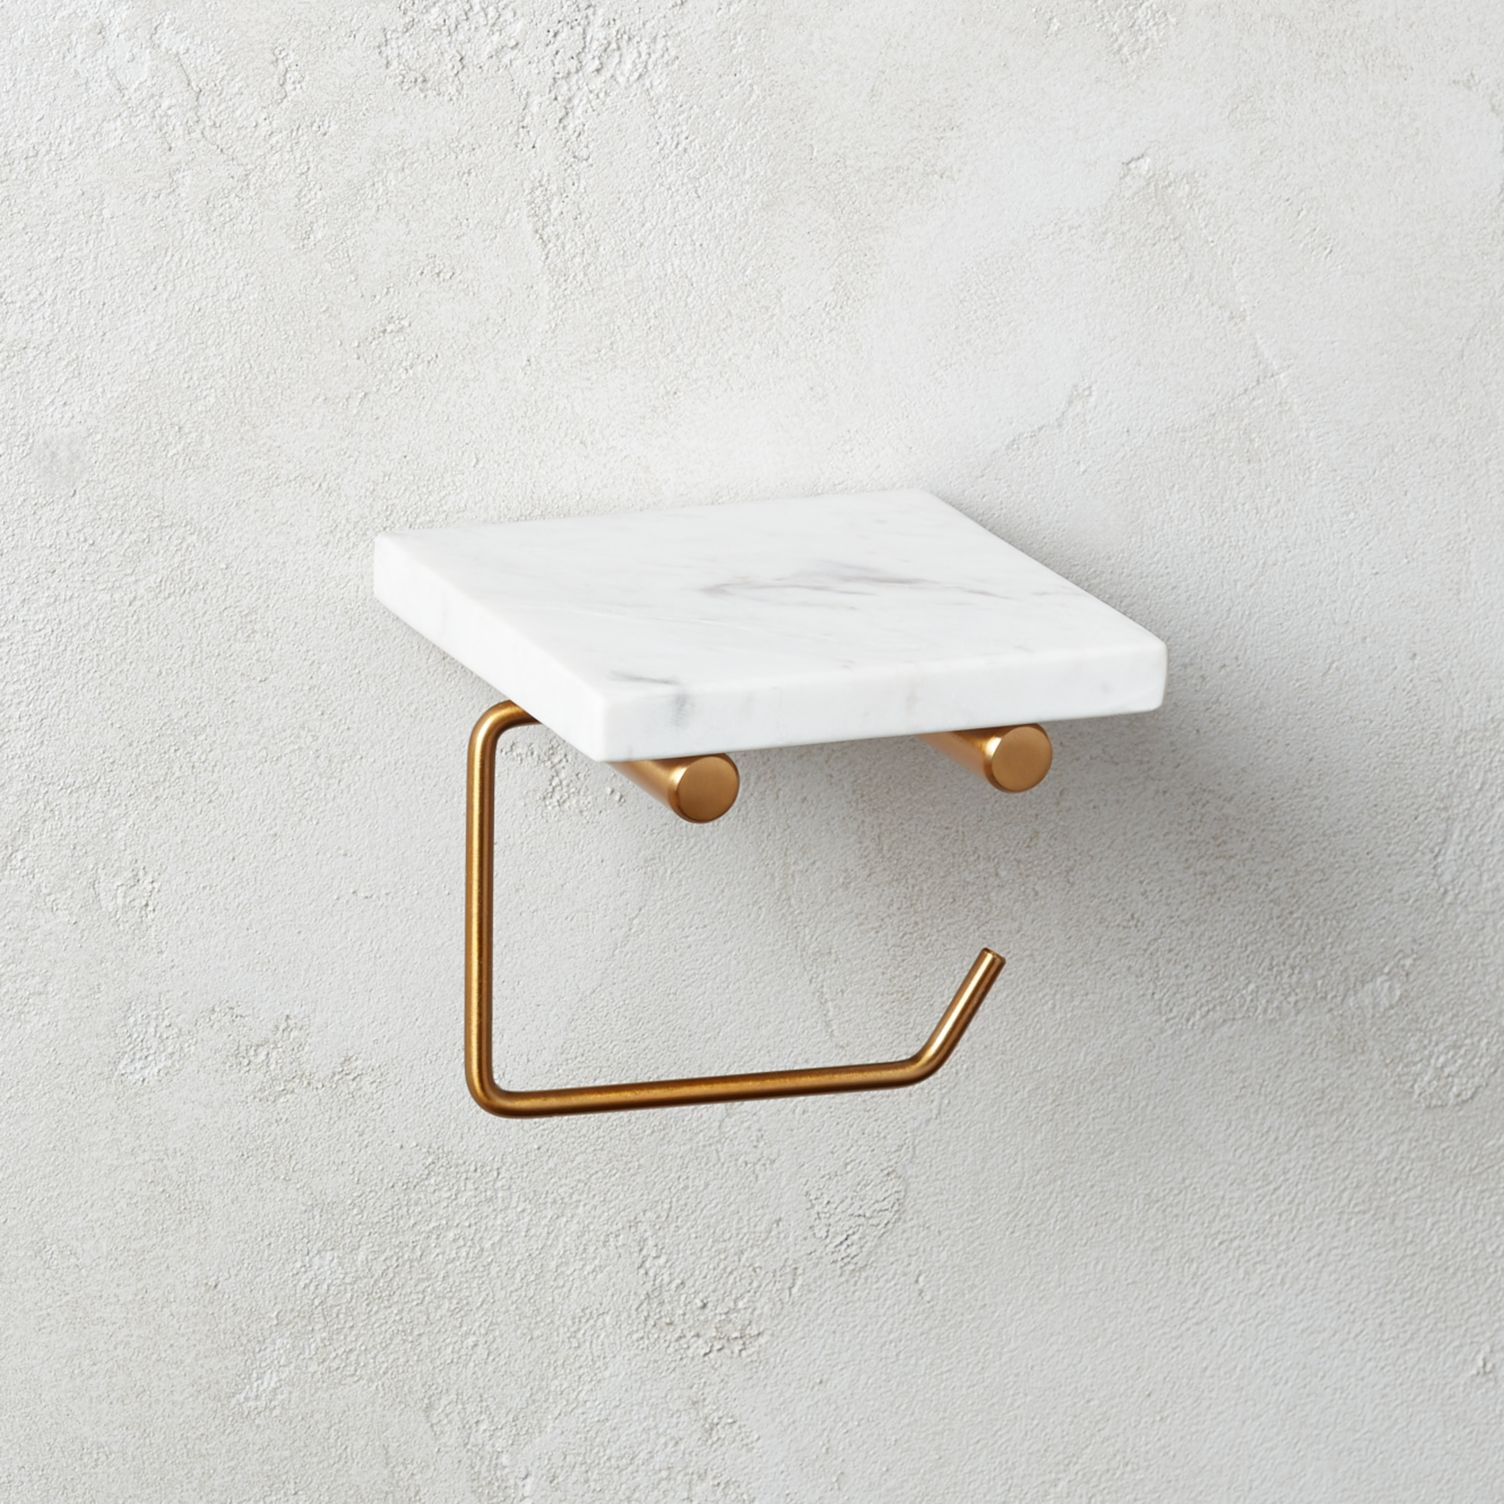 Marble and brass toilet paper holder